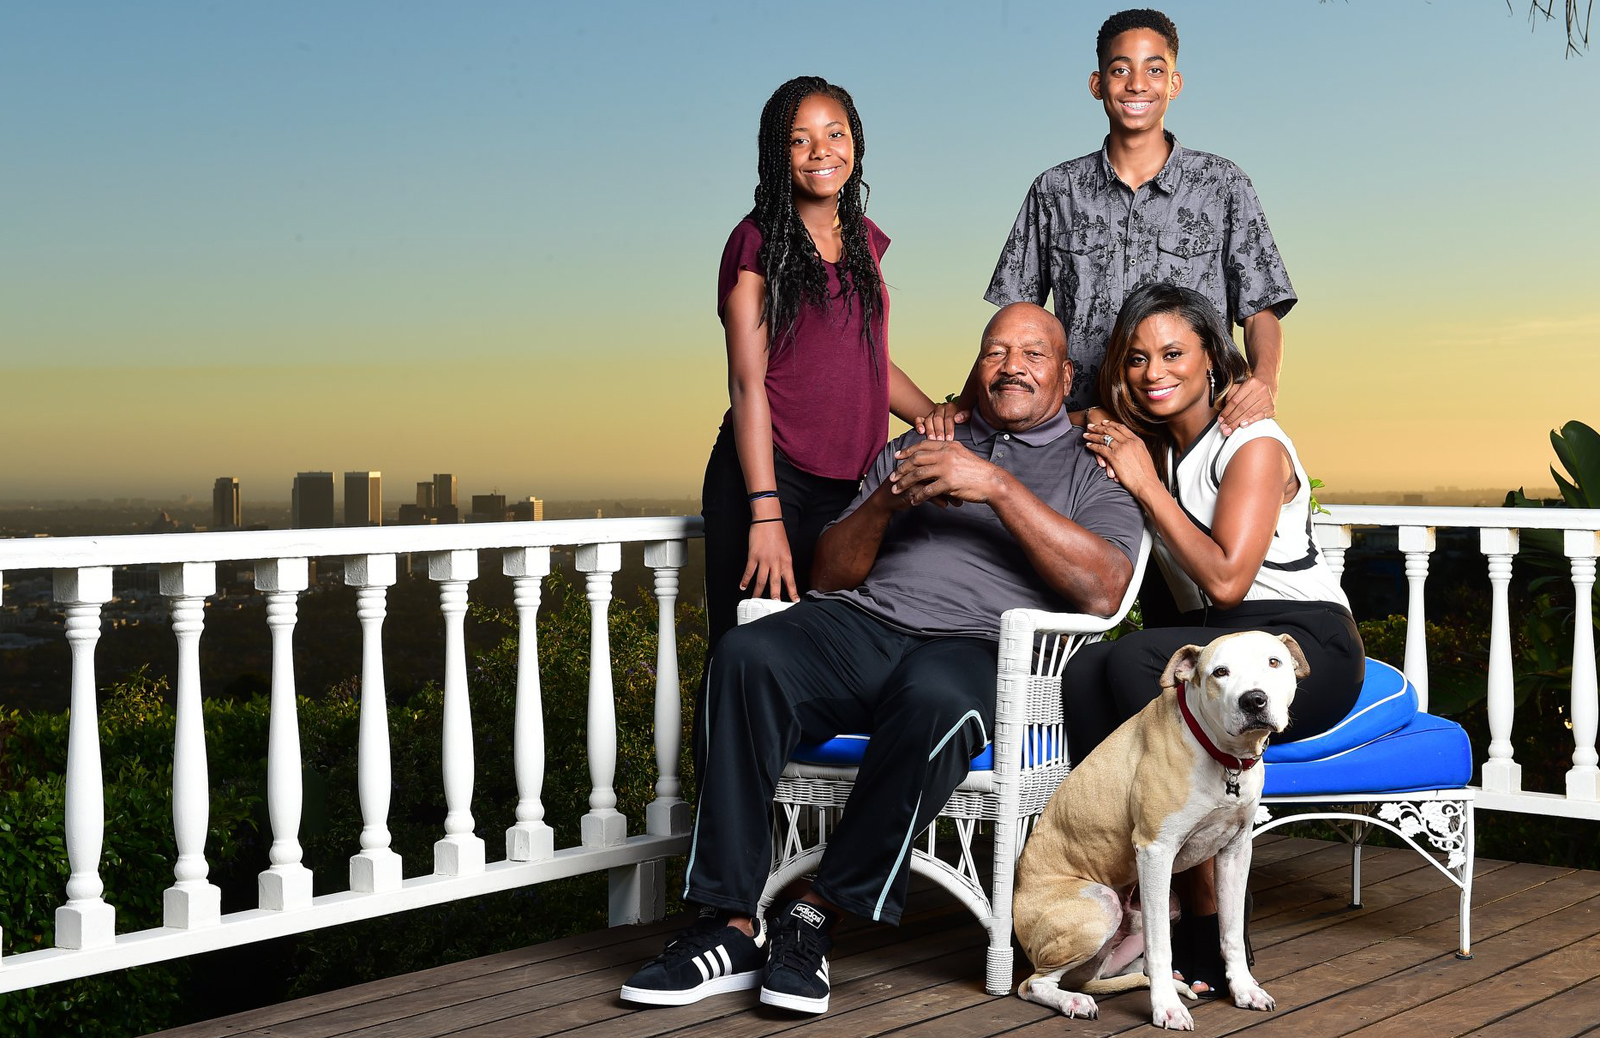 Jim Brown with daughter Morgan, son Aris, wife Monique and their dog, Cooper, photographed in Los Angeles, Sept. 30, 2015. (Robert Beck for Sports Illustrated)